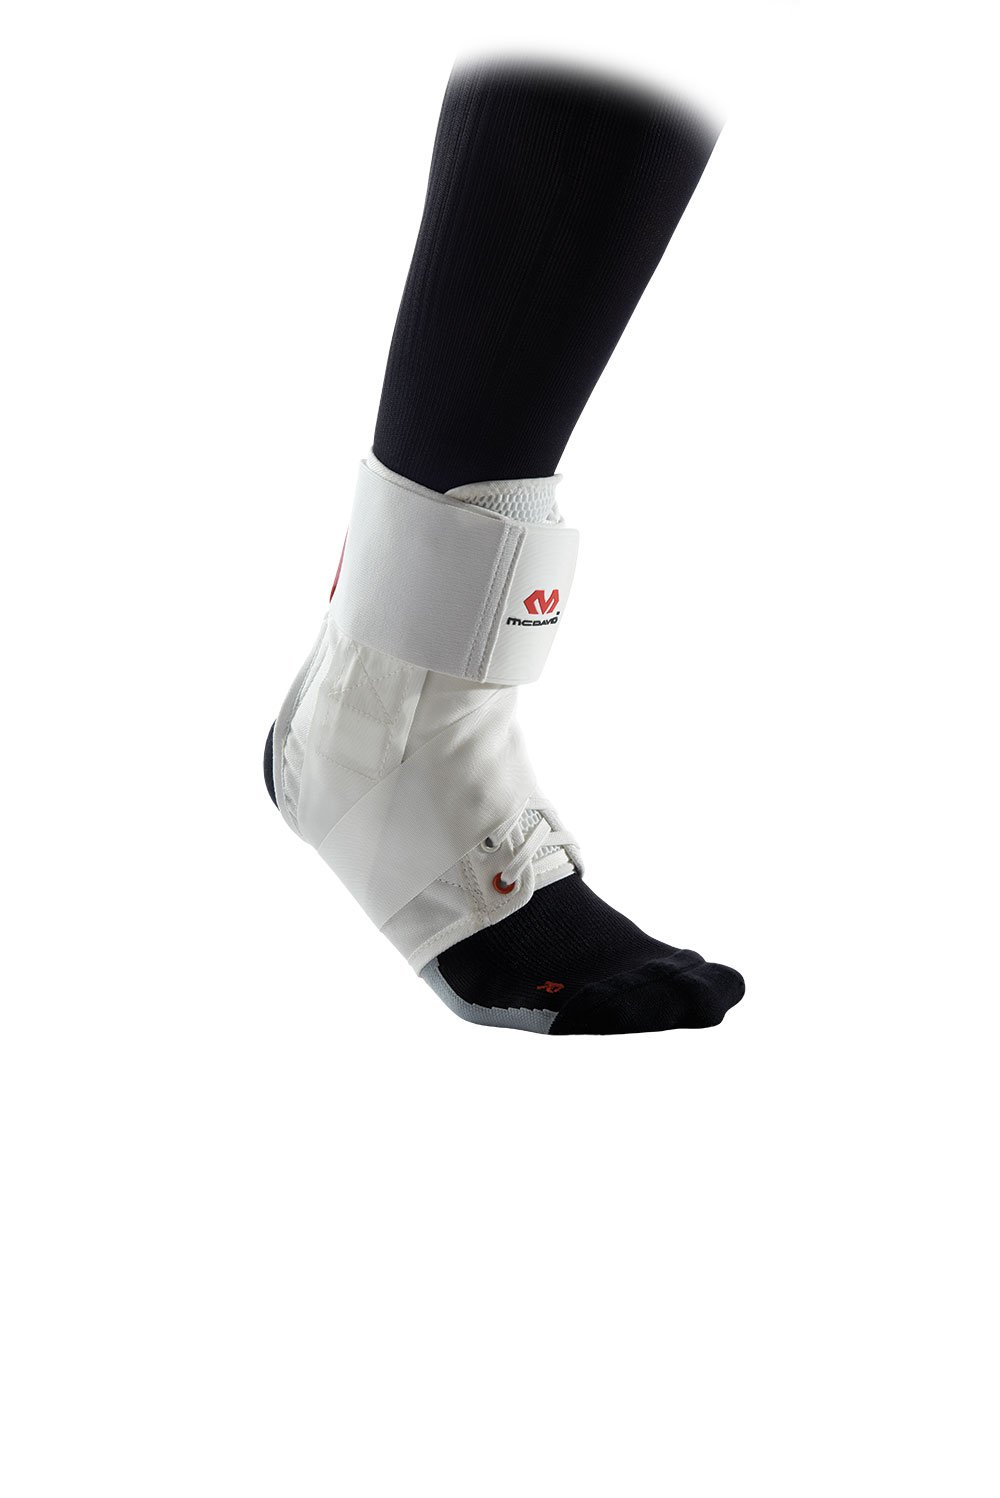 Mcdavid Ultralight Ankle Brace With Figure 6 Strap, Small